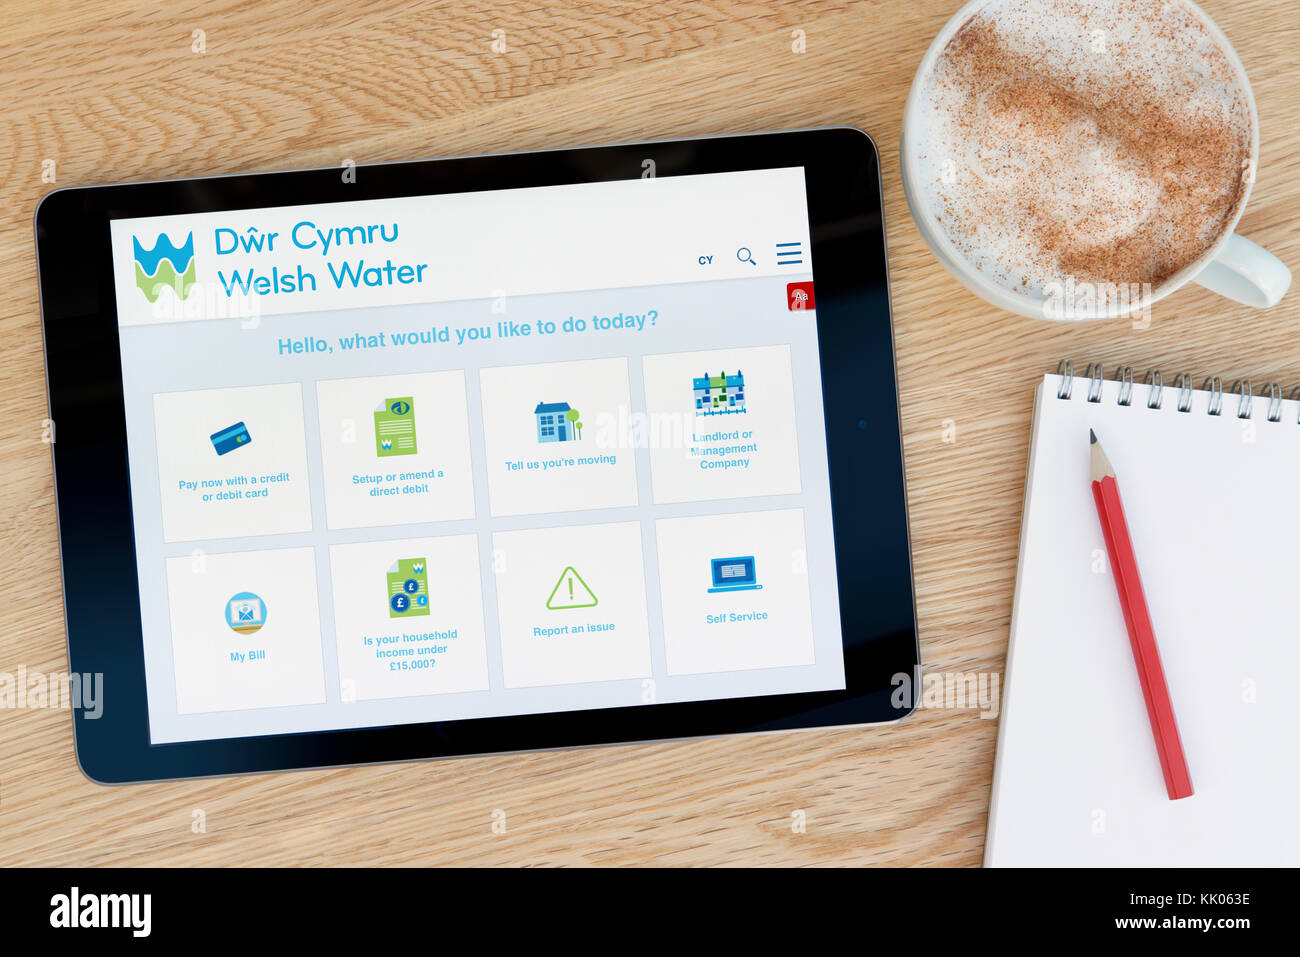 A man looks at the Welsh Water website on his iPad tablet device, shot against a wooden table top background (Editorial - Stock Image